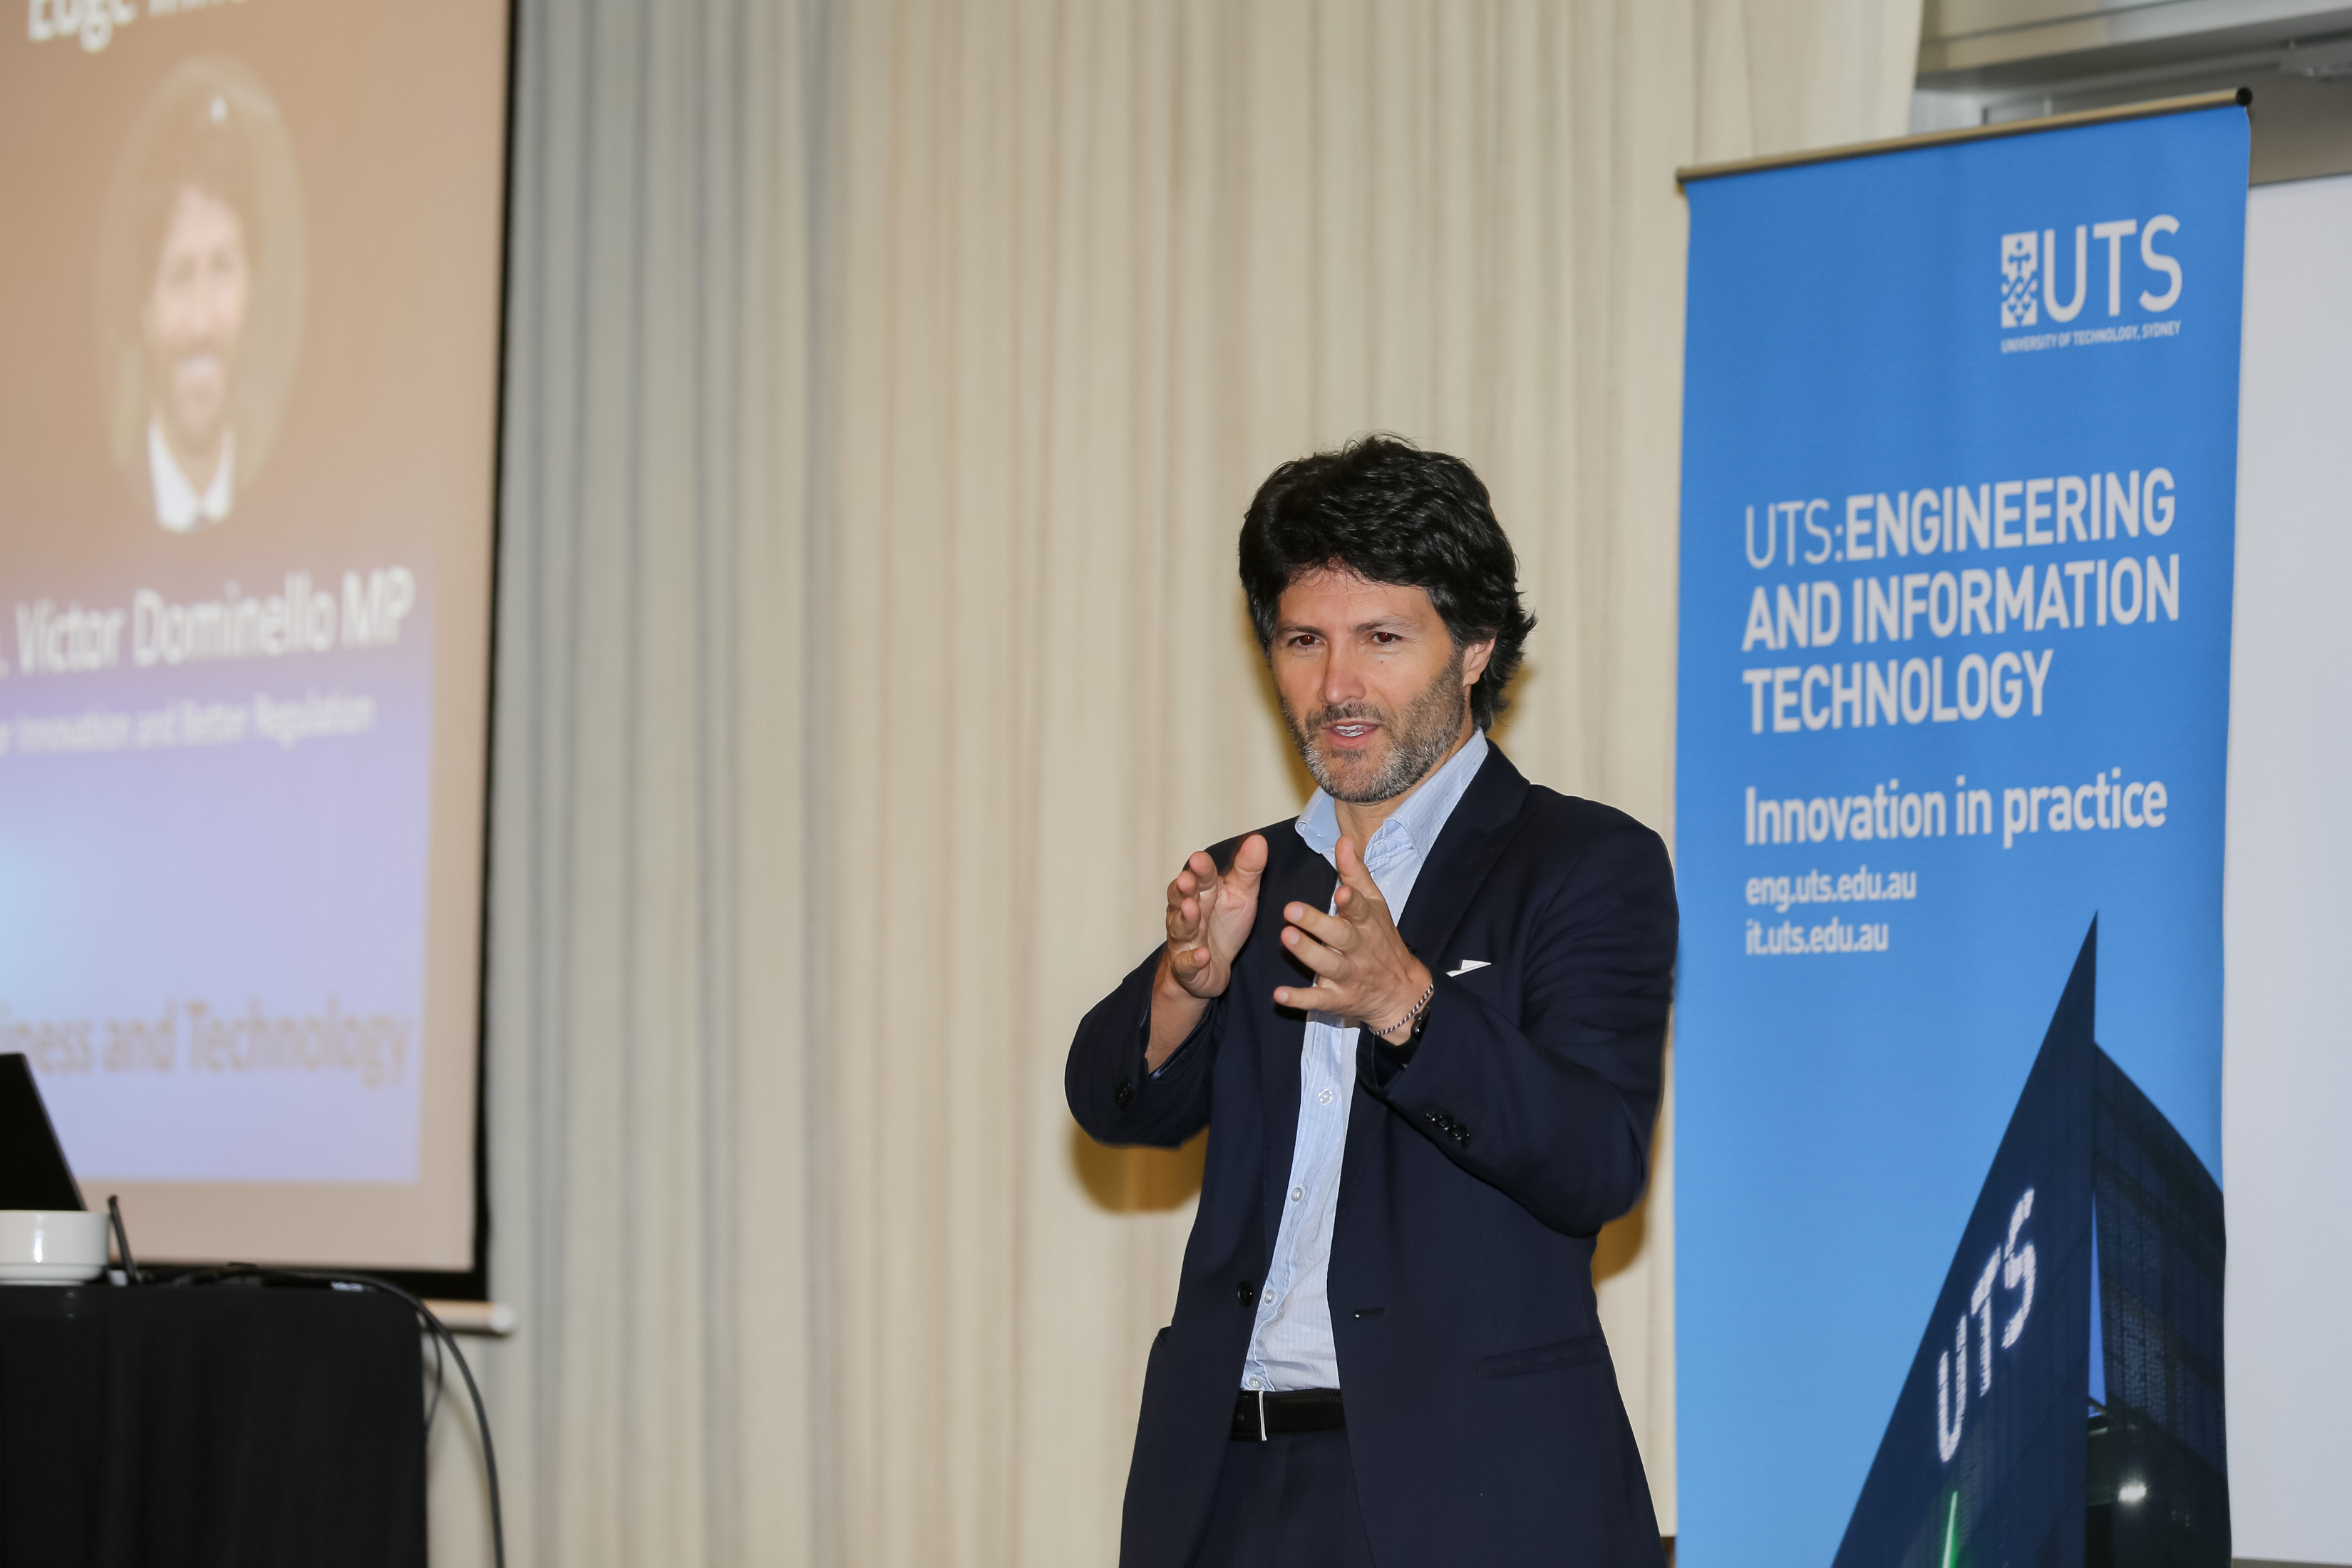 UTS Master of Business and Technology community event MP Victor Dominello speaking